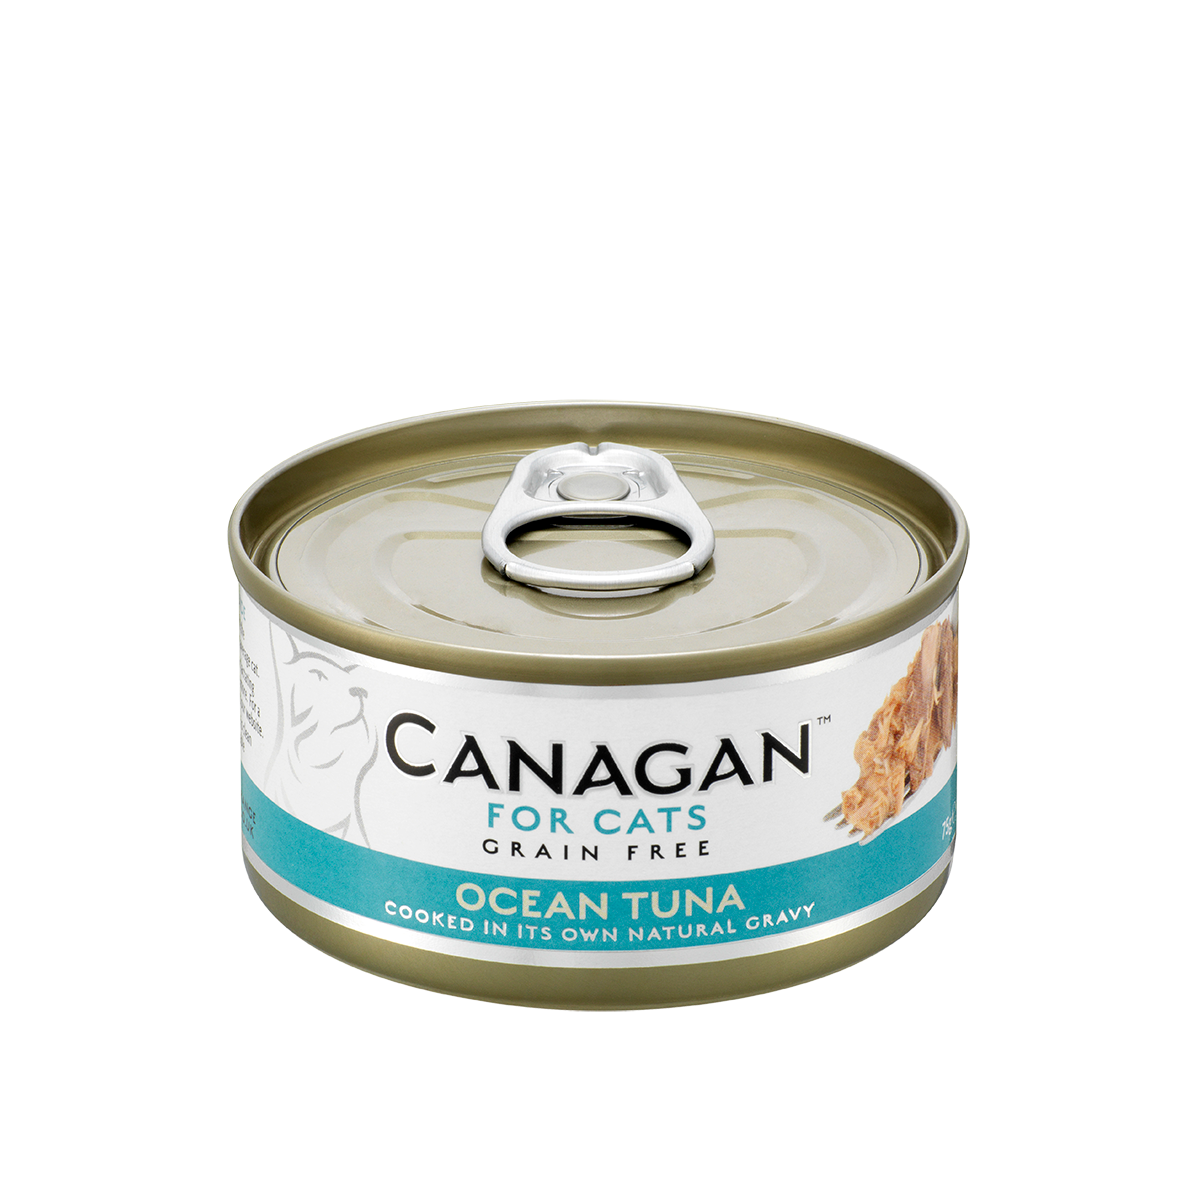 Canagan Cat Can Wet Ocean Tuna 75gx12 --<$14/can!>--